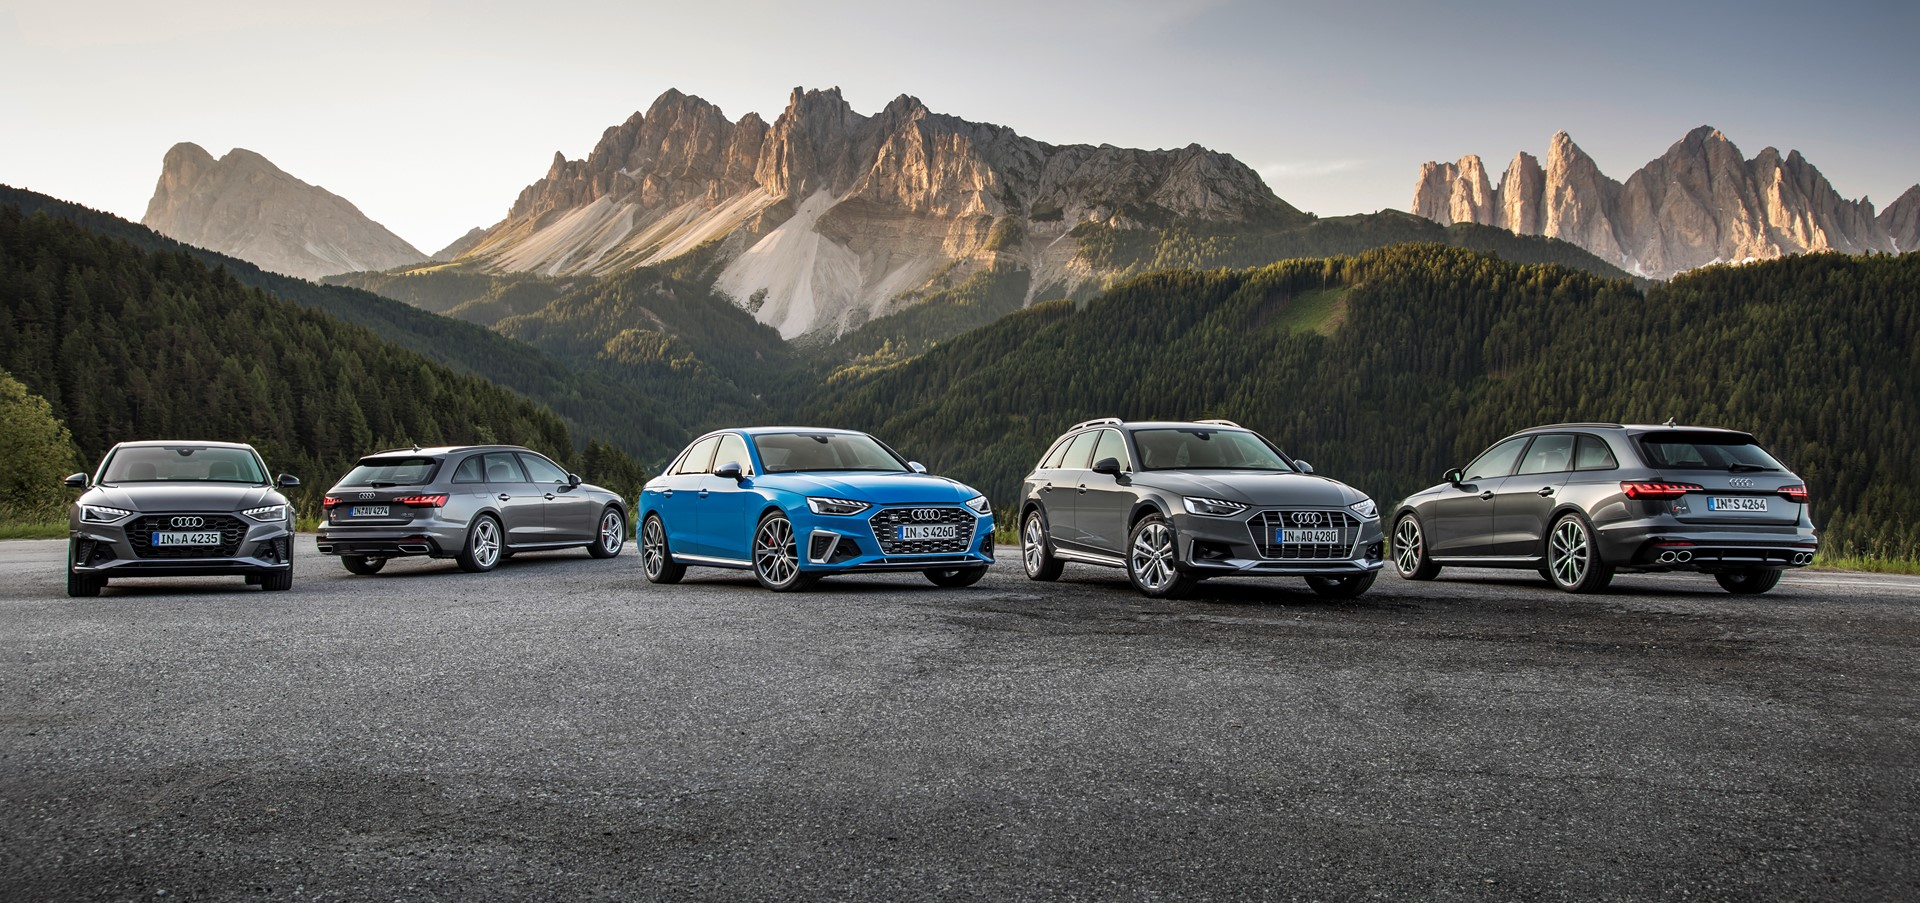 The Audi A4 product line launches with a new look